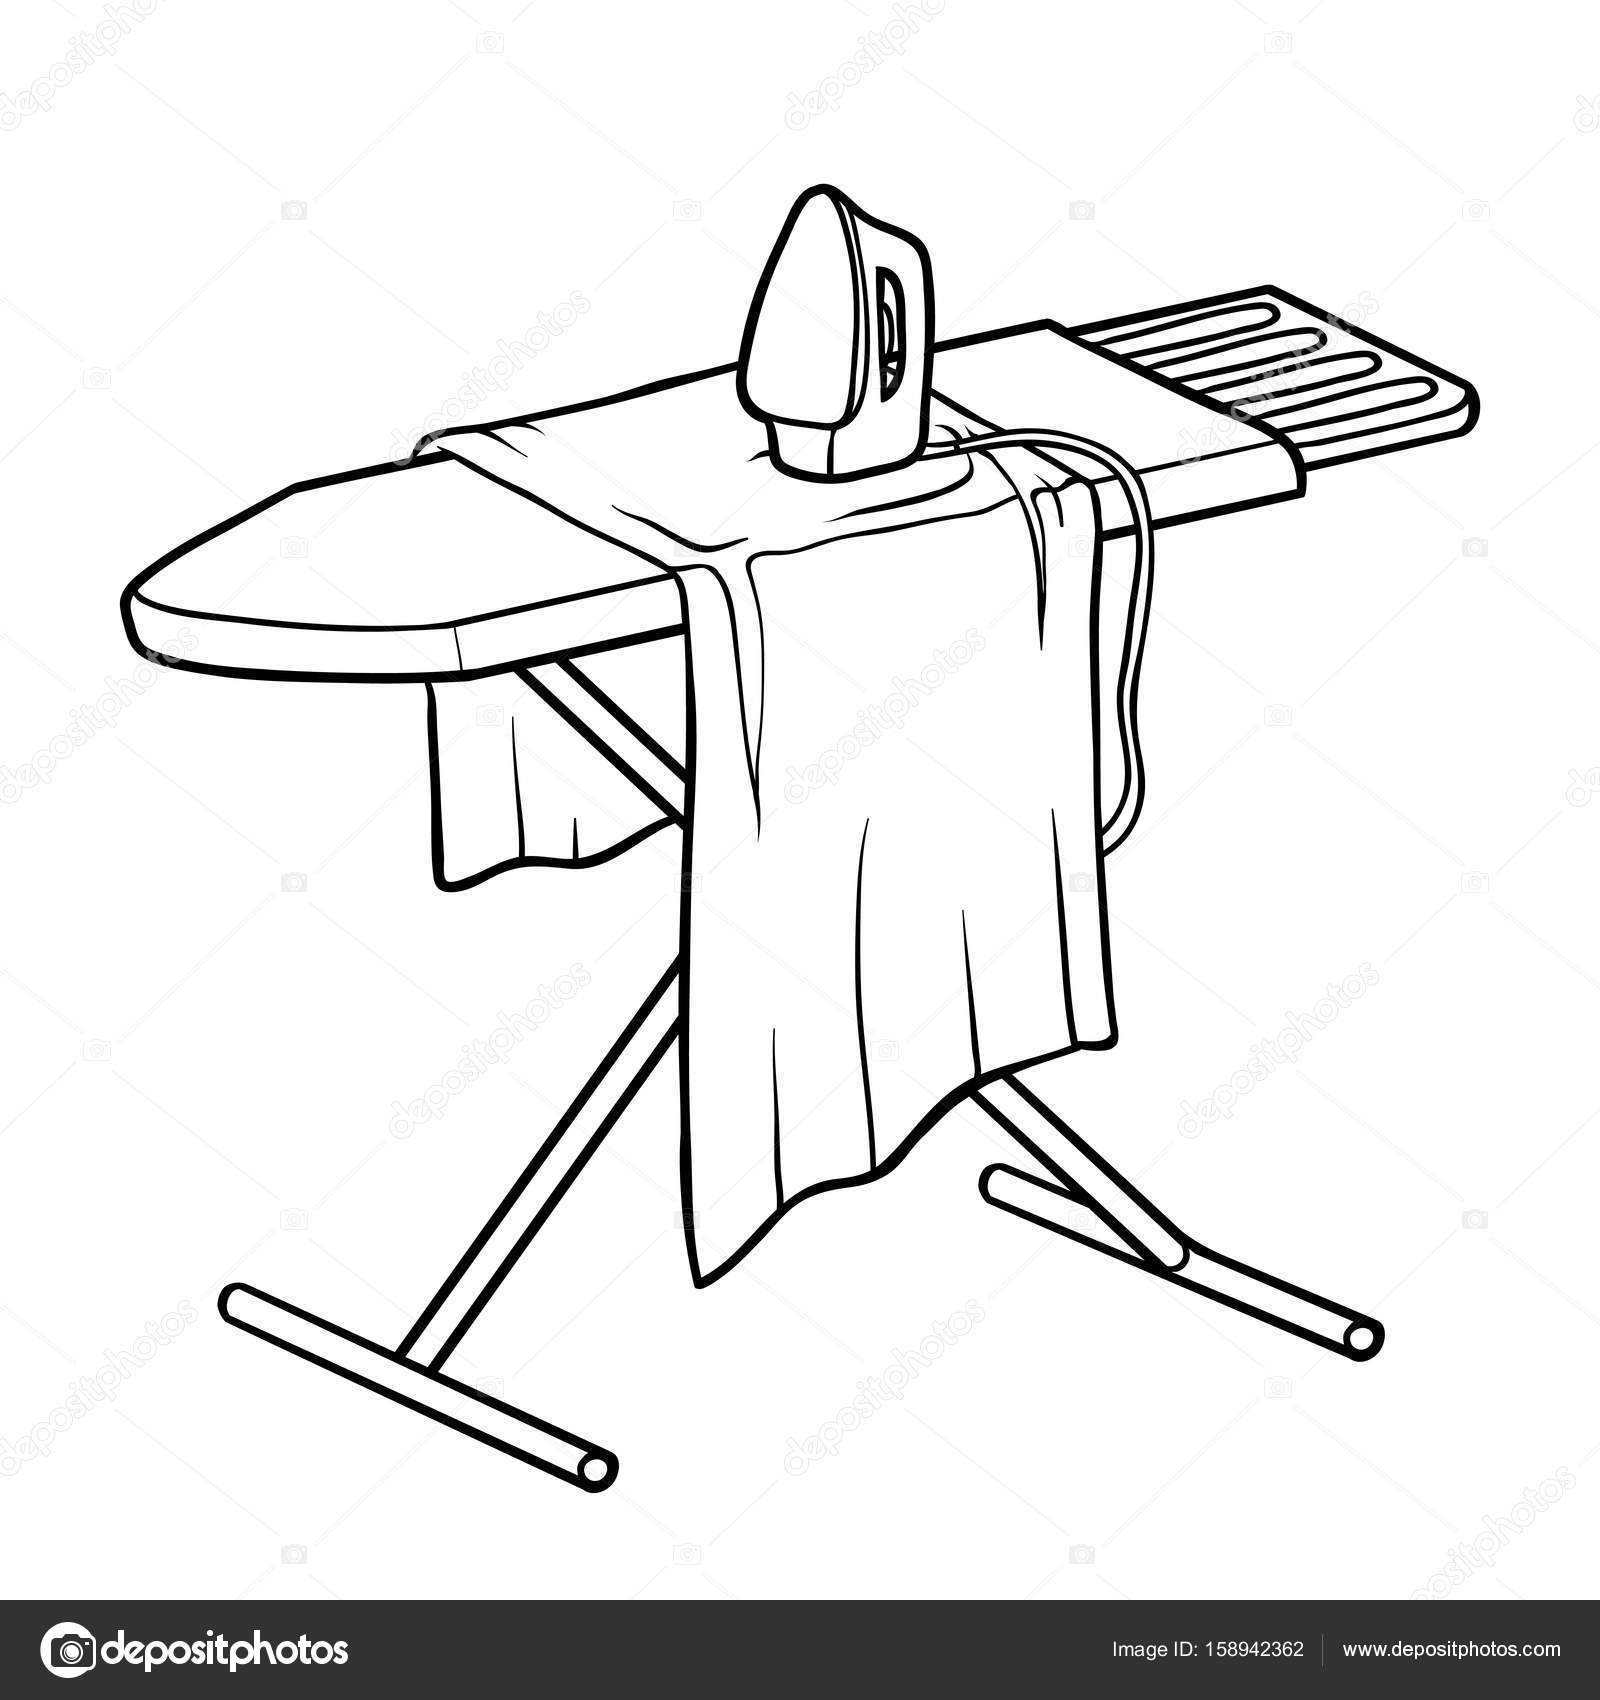 coloring book  ironing board  u2014 stock vector  u00a9 ksenya savva